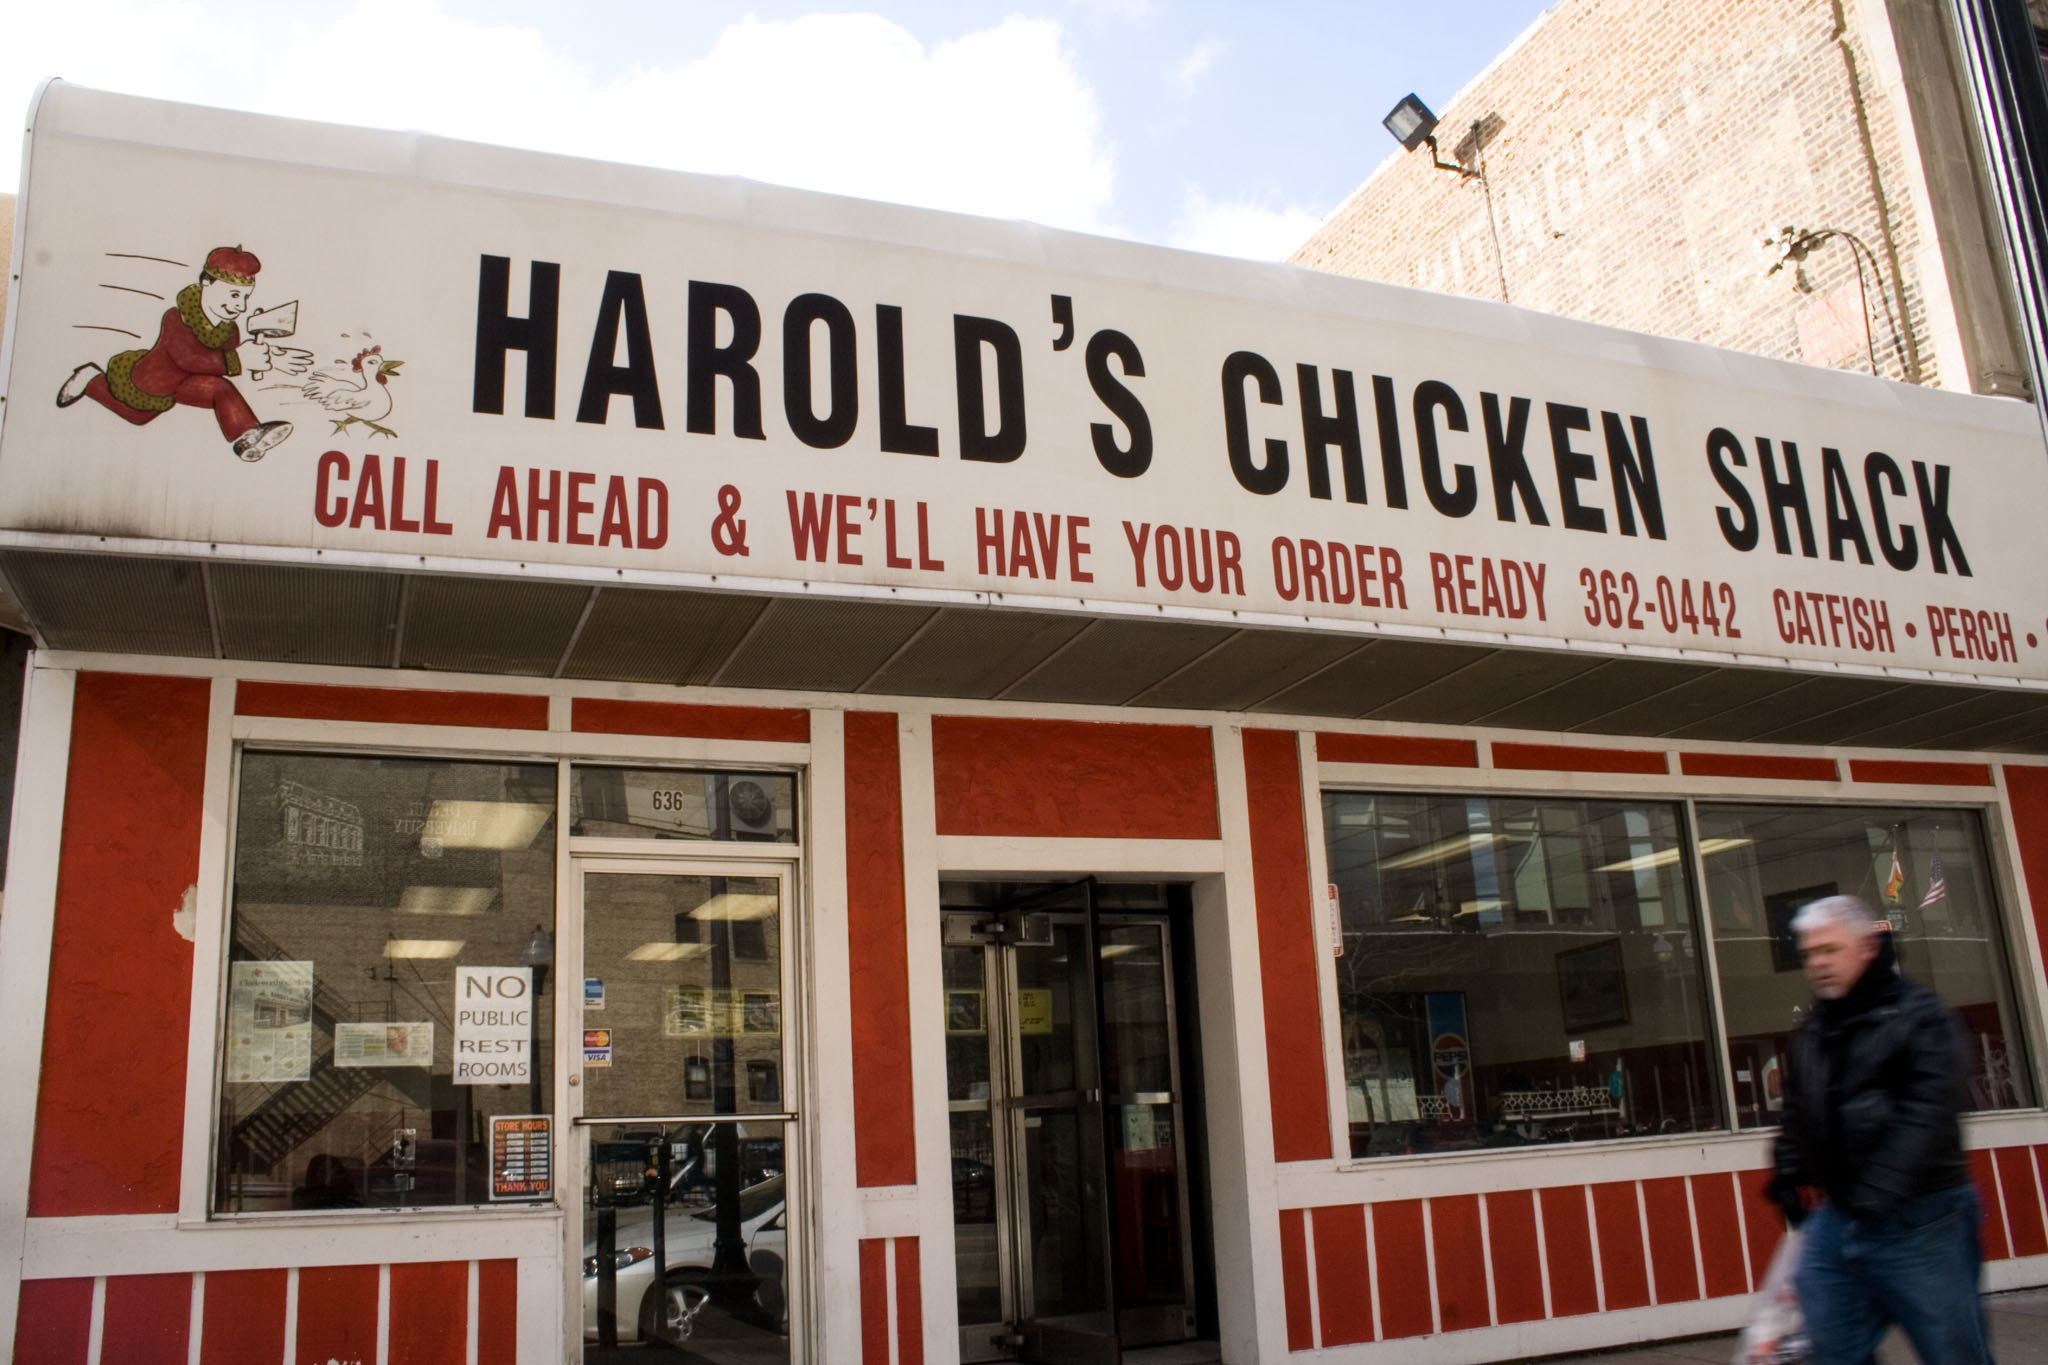 Harold's Chicken Shack #24